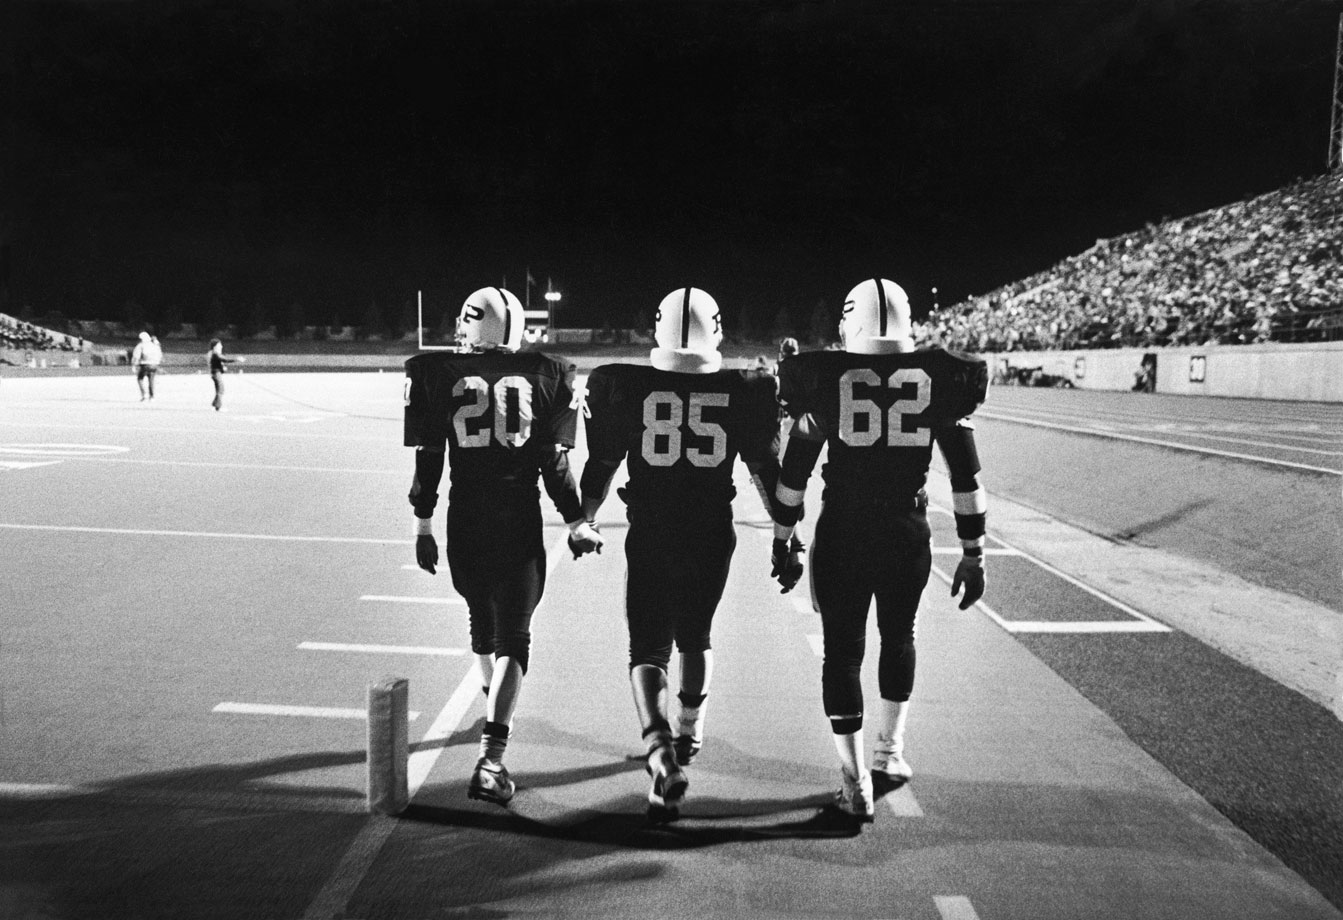 friday night lights Check out our guide to the film and television projects the friday night lights cast has worked on since the end of the beloved show.